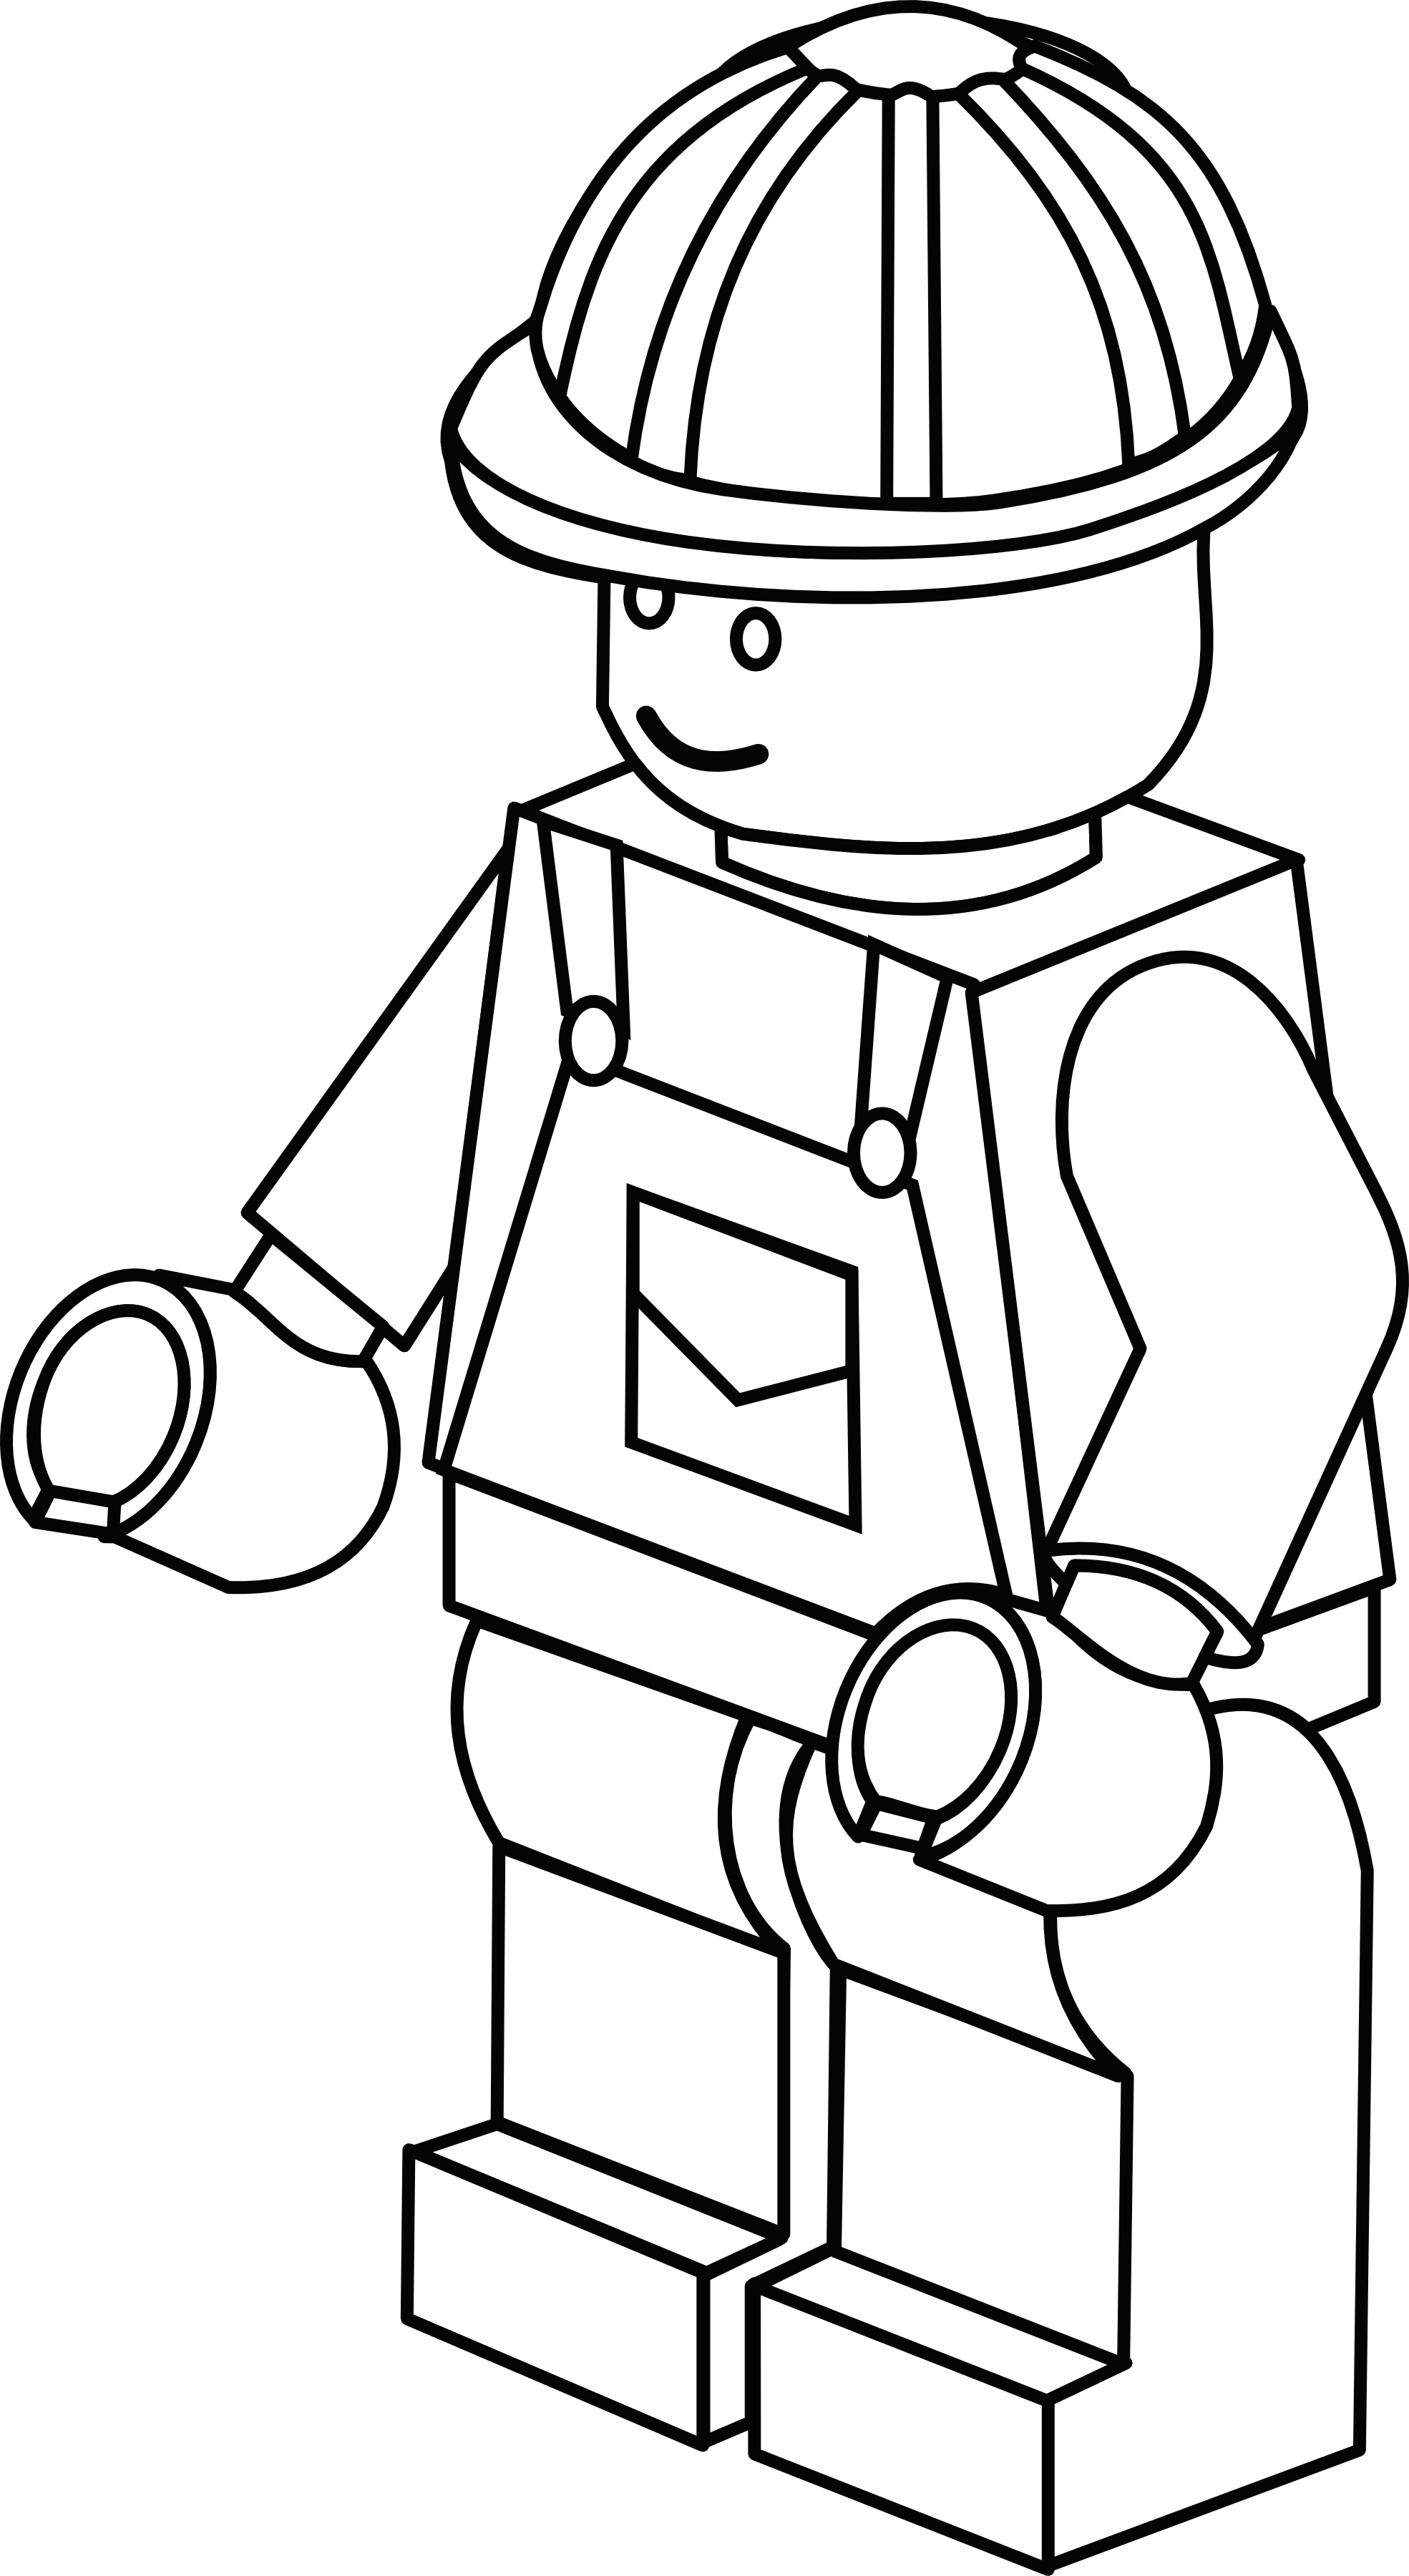 More complex LEGO figure colouring sheet Lego coloring